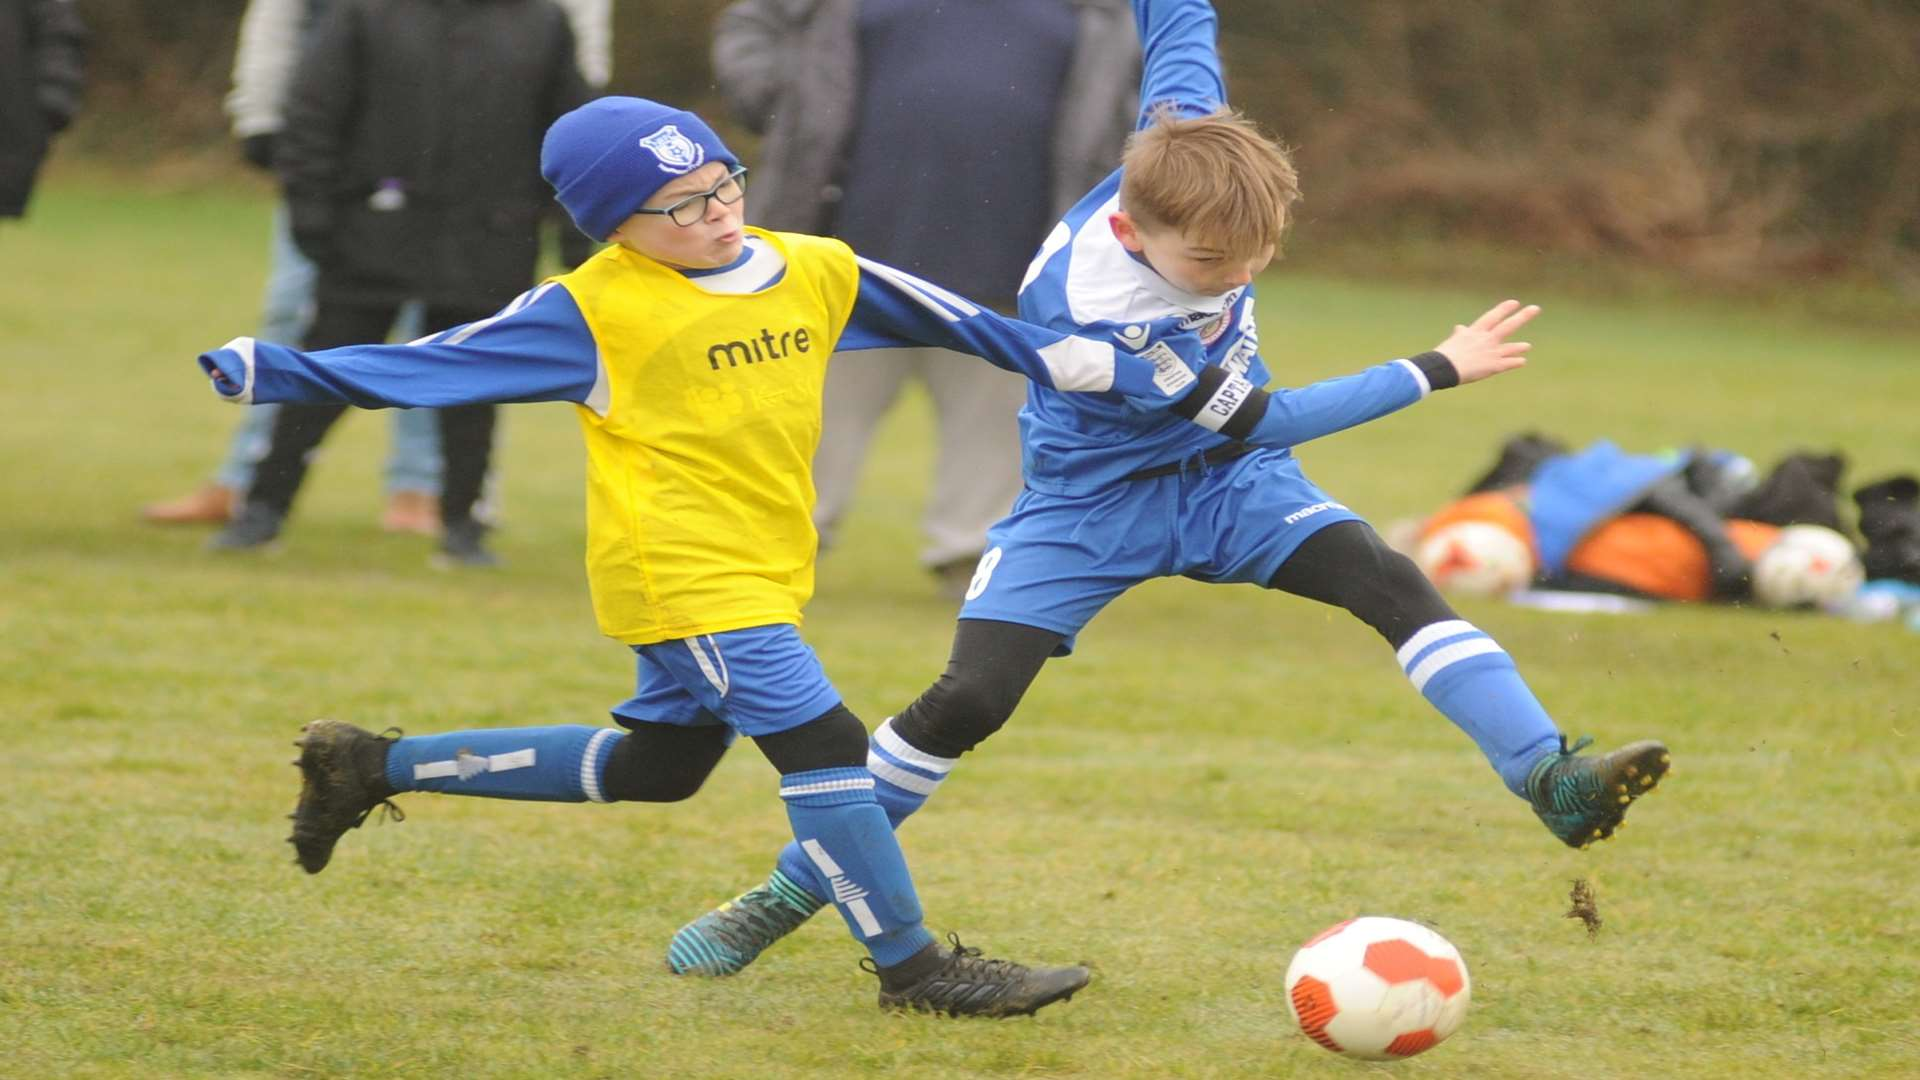 KFU Woodpecker and New Road under-9s battle it out Picture: Steve Crispe